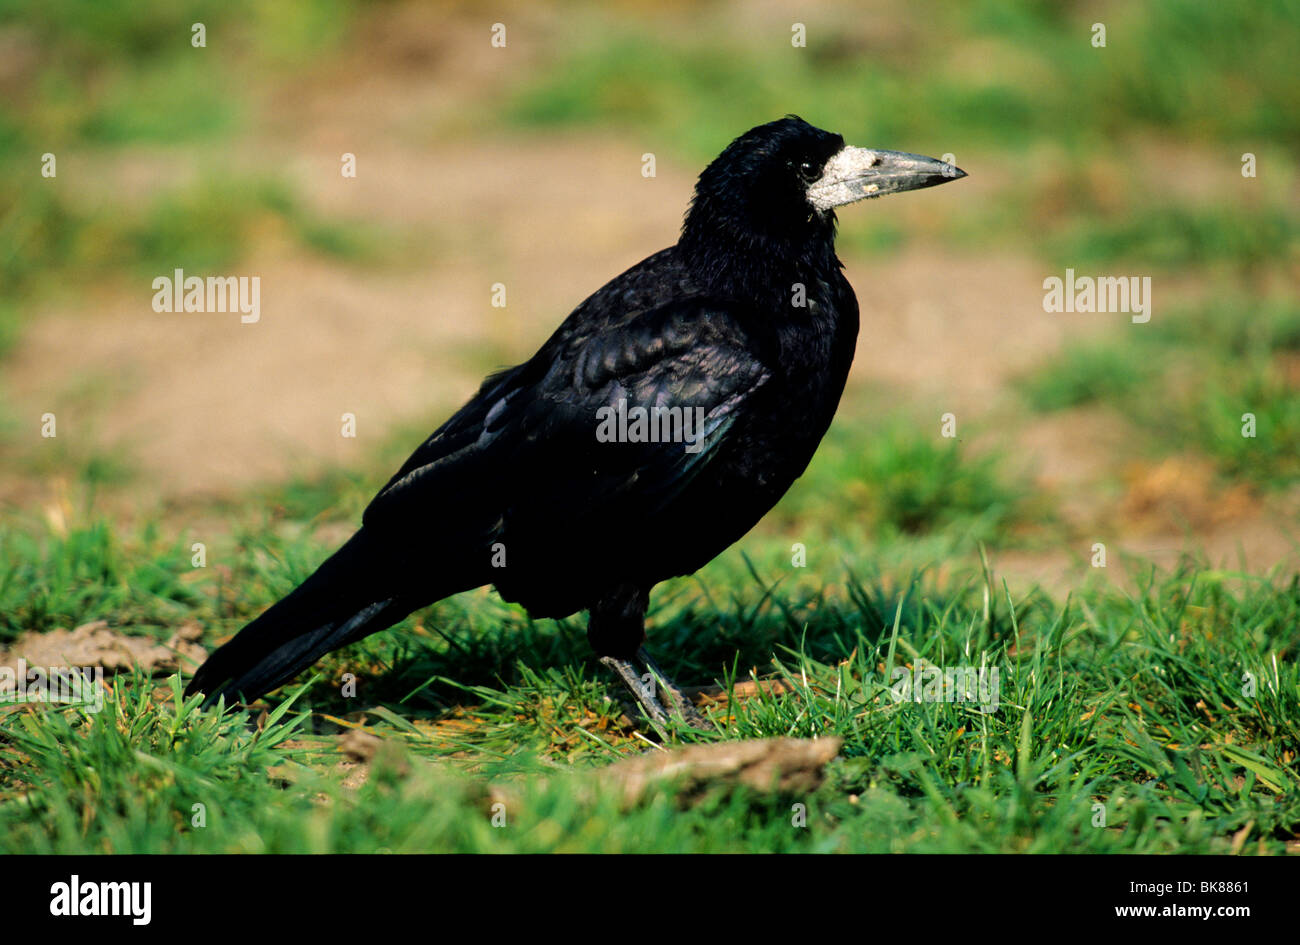 Rook (Corvus frugilegus) standing in the grass looking for food - Stock Image